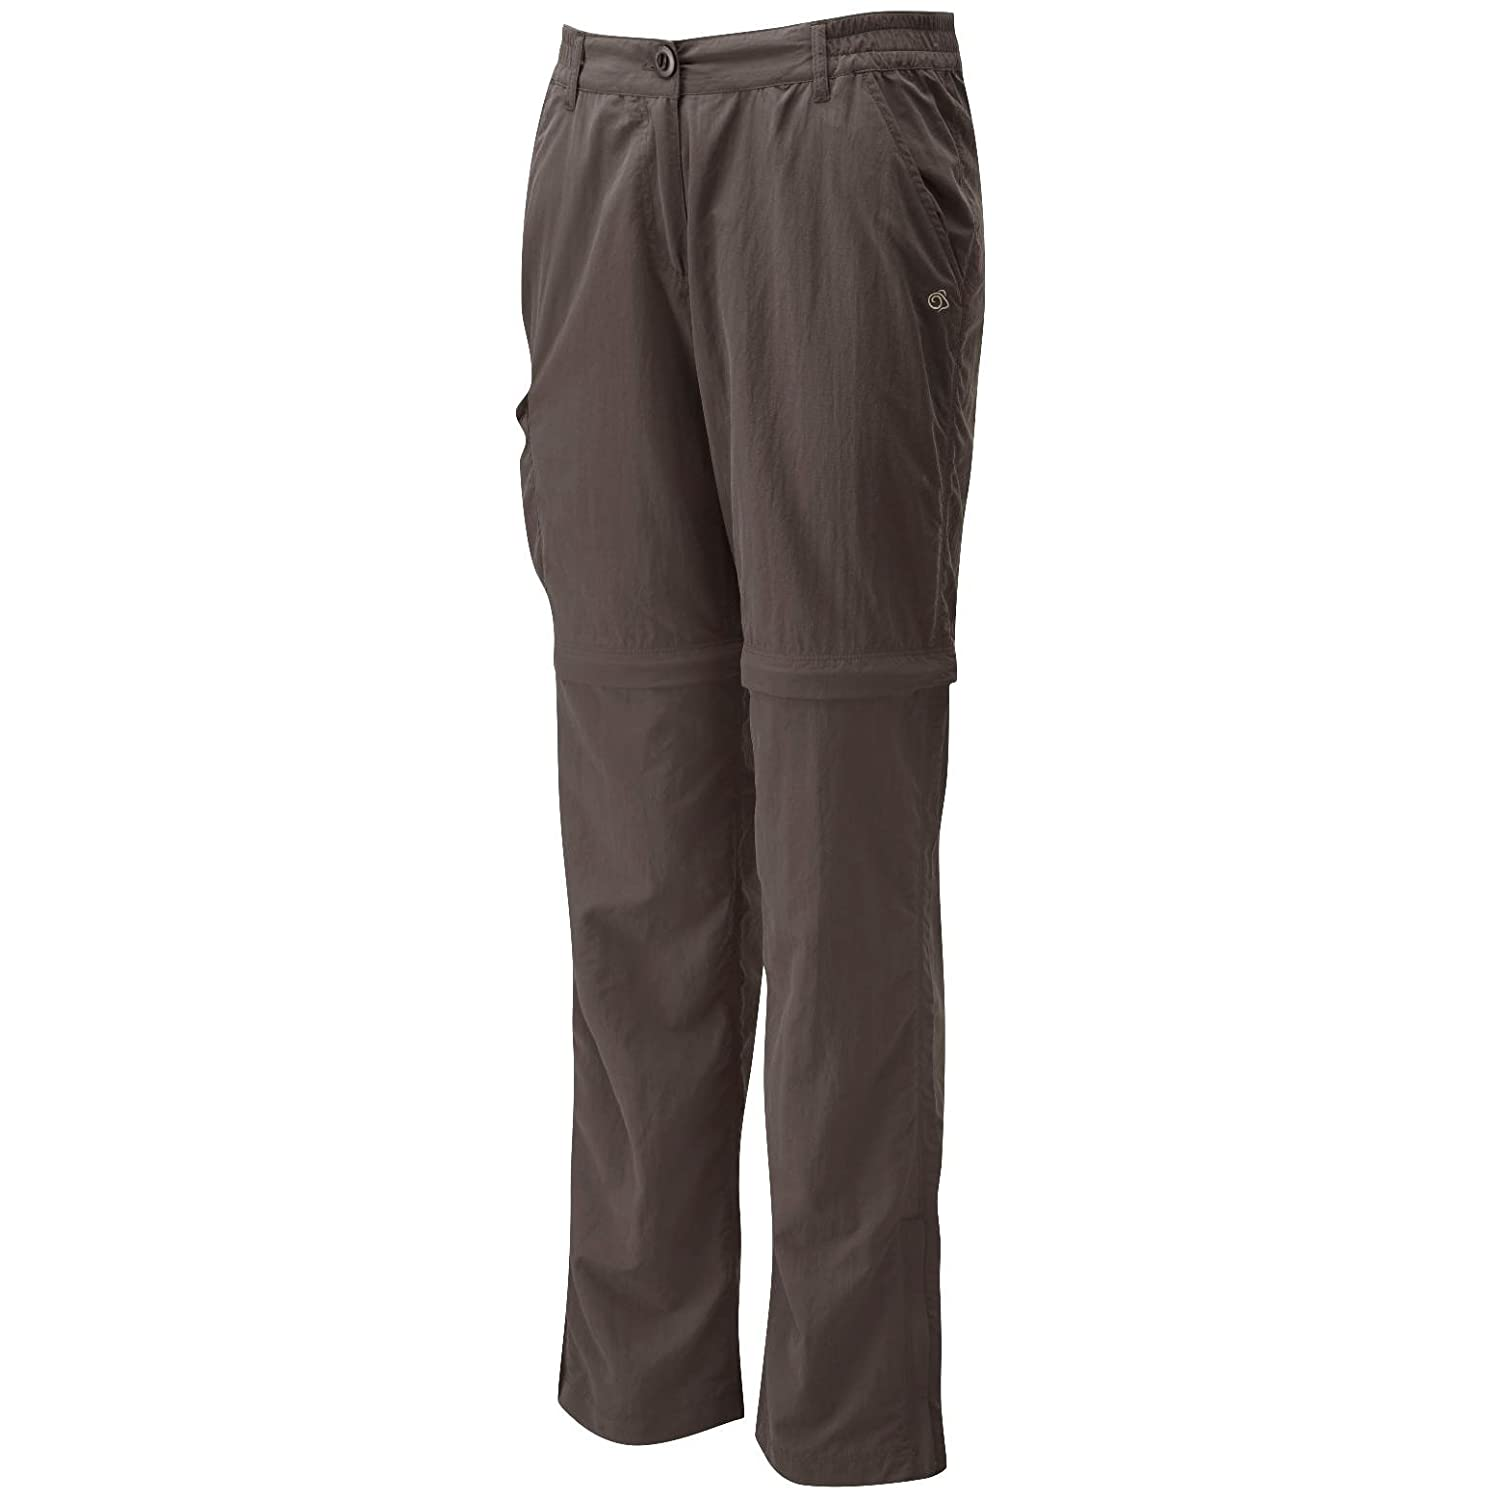 67f867a0c4c4 Womens Nosilife Zip Off Trousers by Craghoppers - Can Be Wo - Cafe Au Lait  - 18S: Amazon.co.uk: Clothing